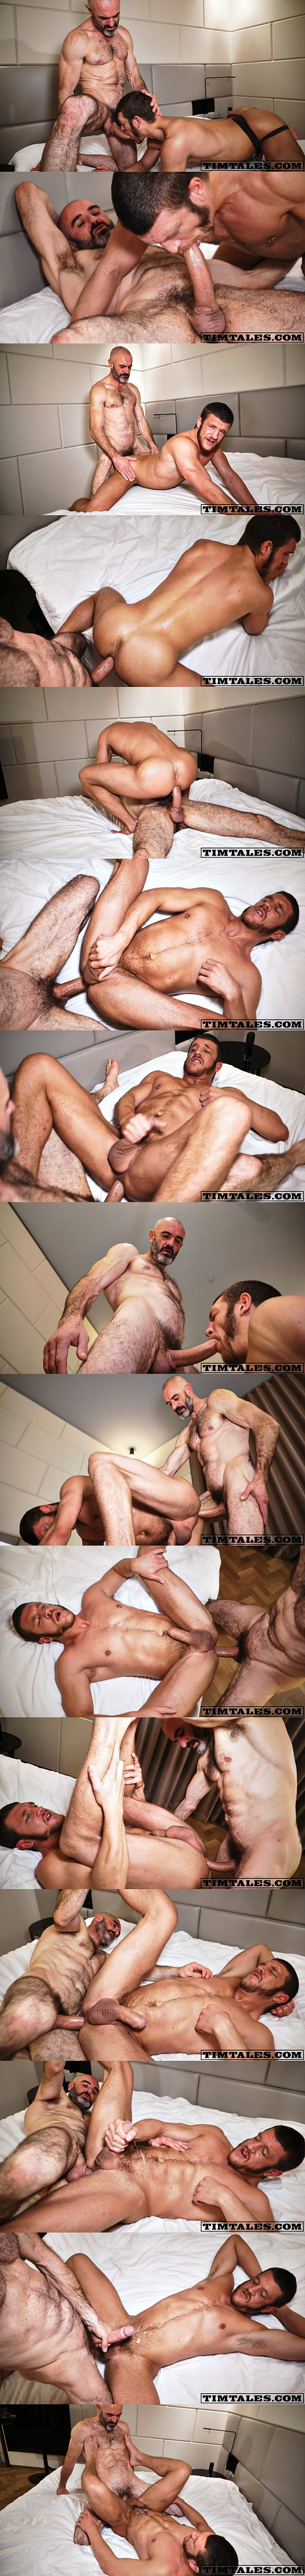 Hairy macho daddy Jay Red barebacks ginger stud Caleb King at Timtales 02